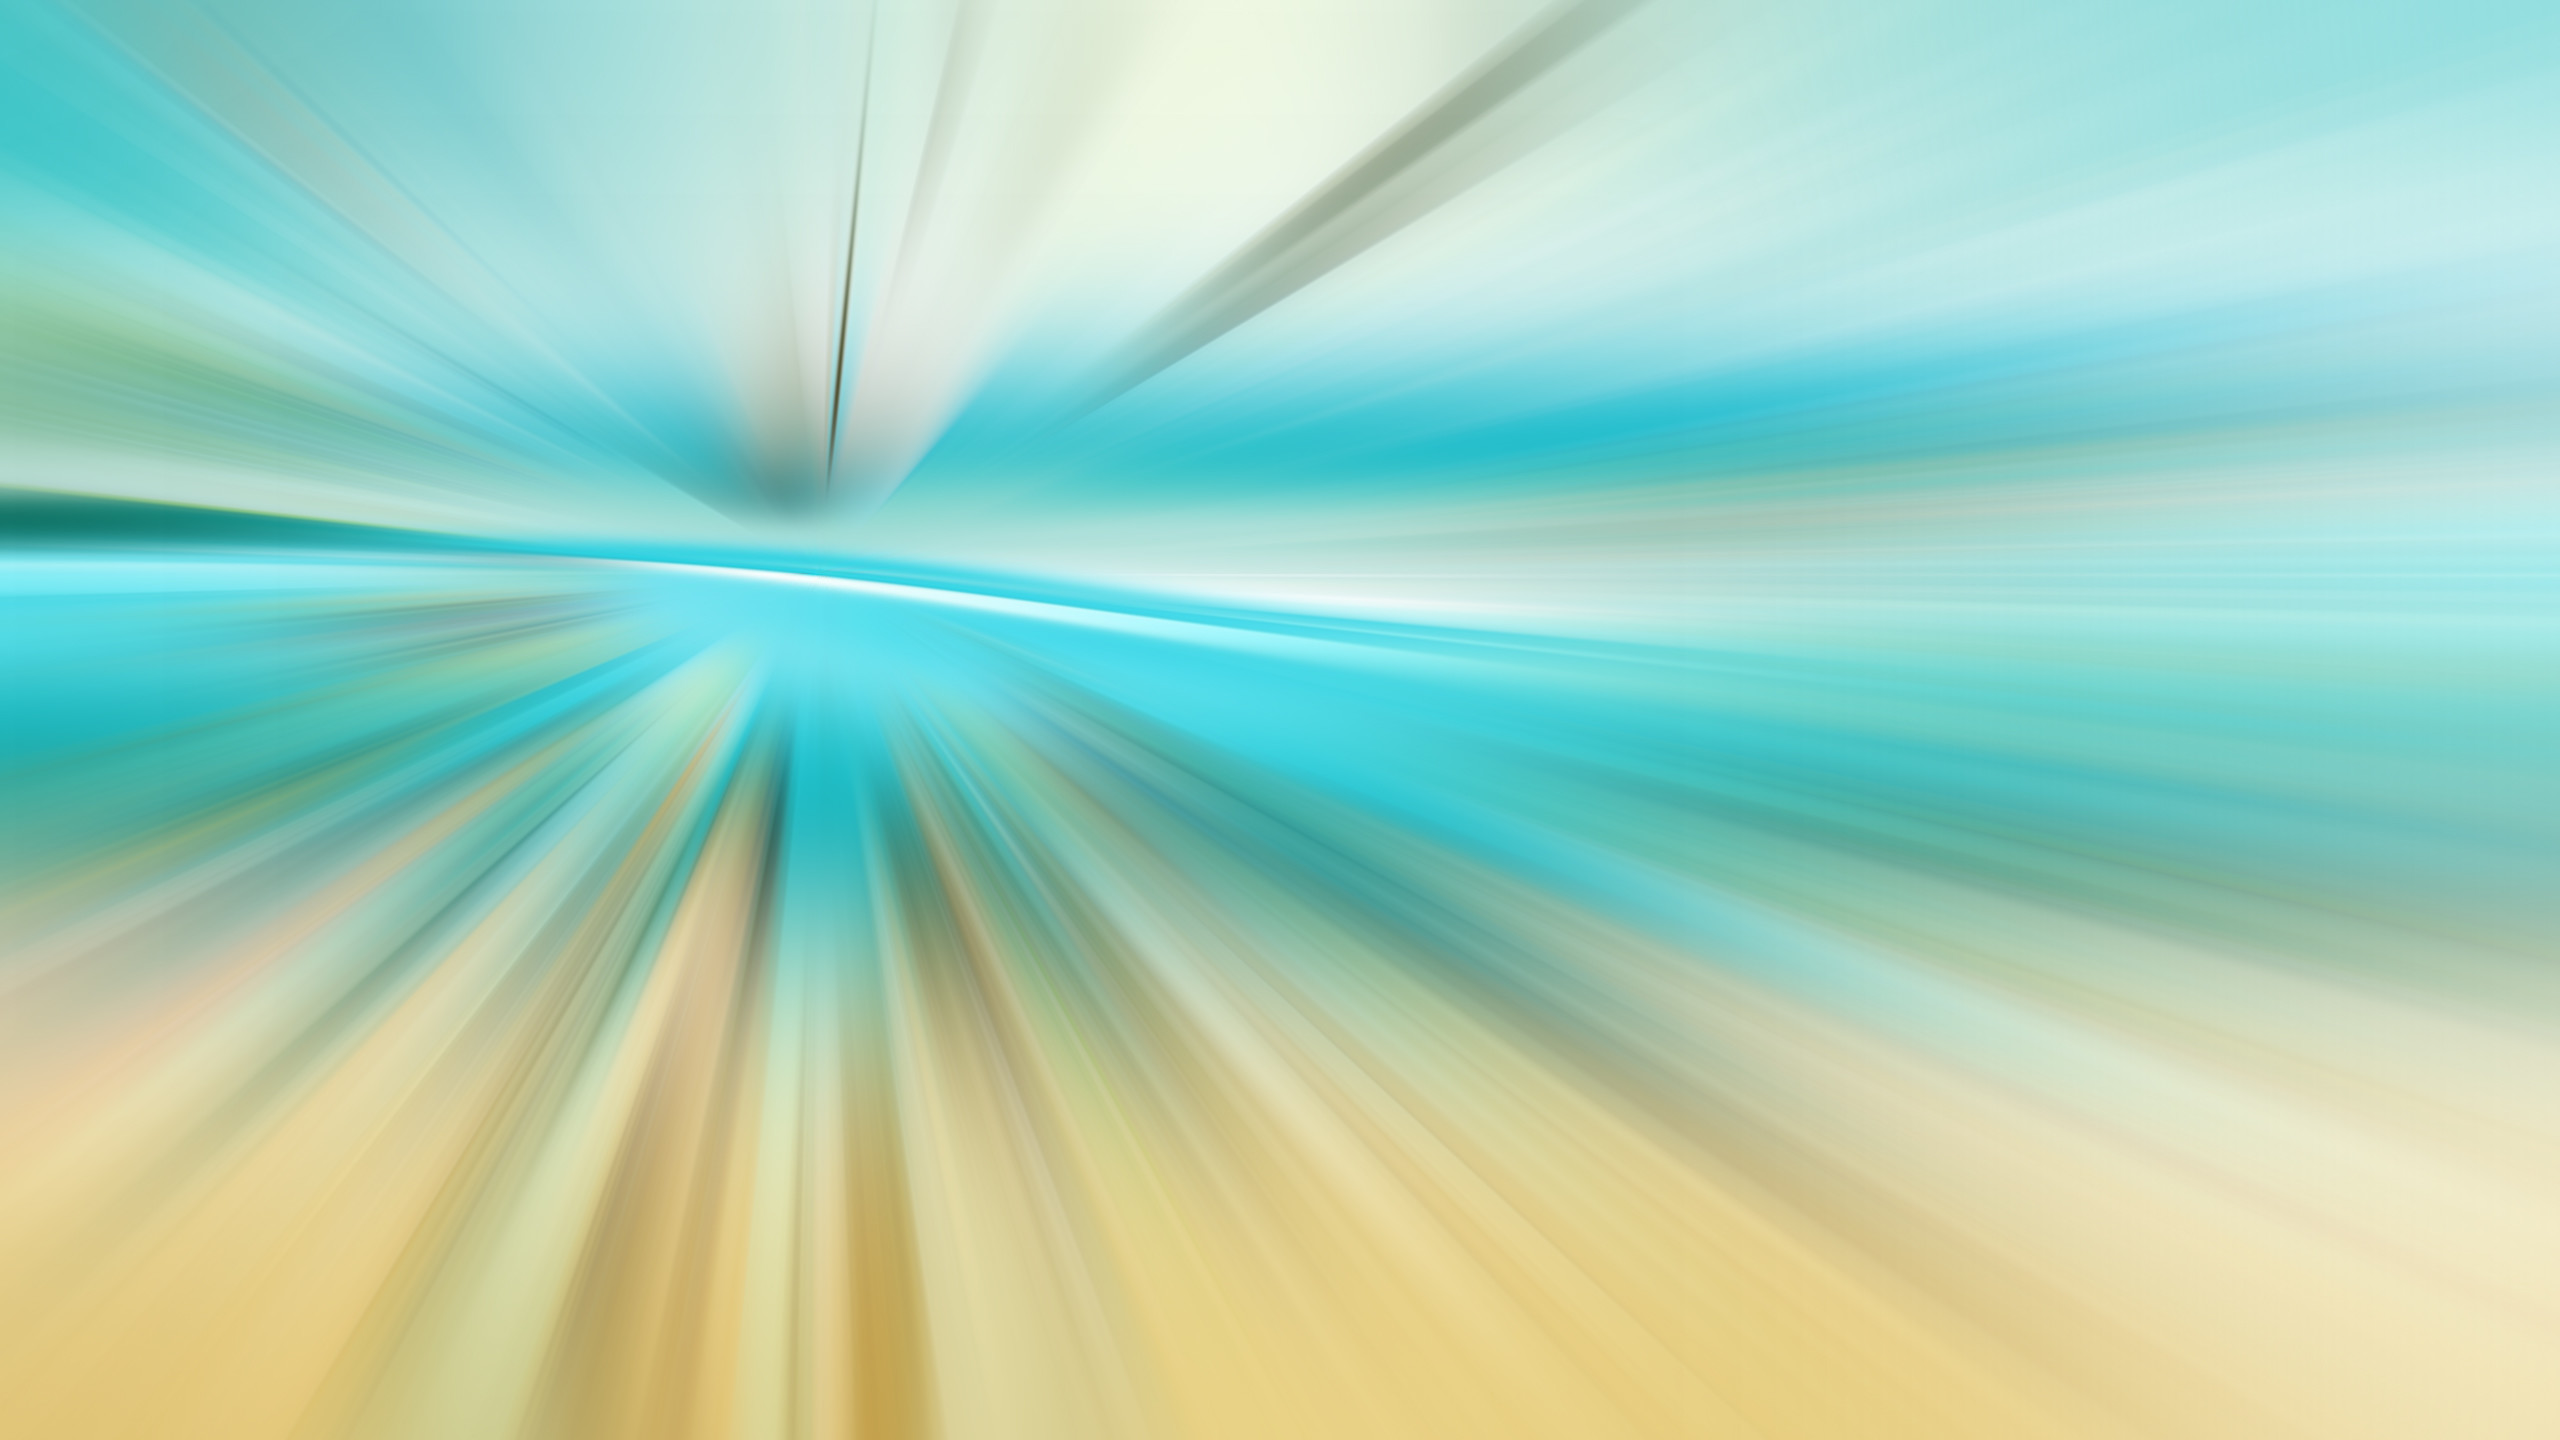 Radial Zoom Blur Abstract Wallpaper